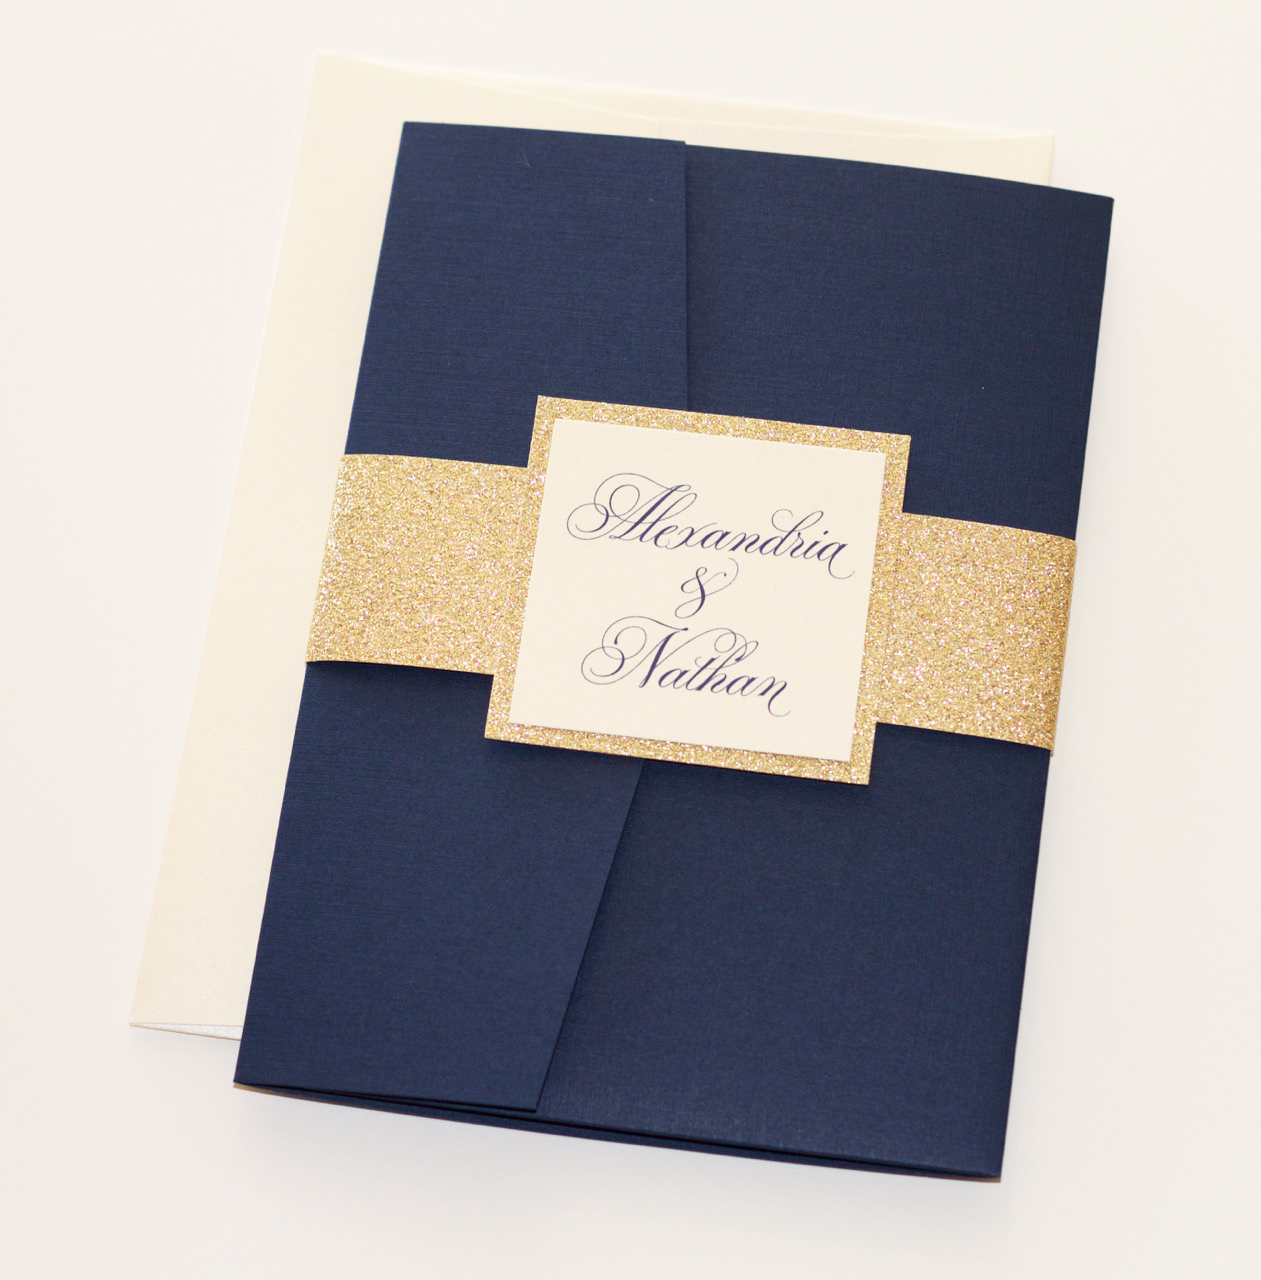 ALEXANDRIA Ivory, Navy Blue & Gold Glitter Invitation - Embellished Paperie  LLC